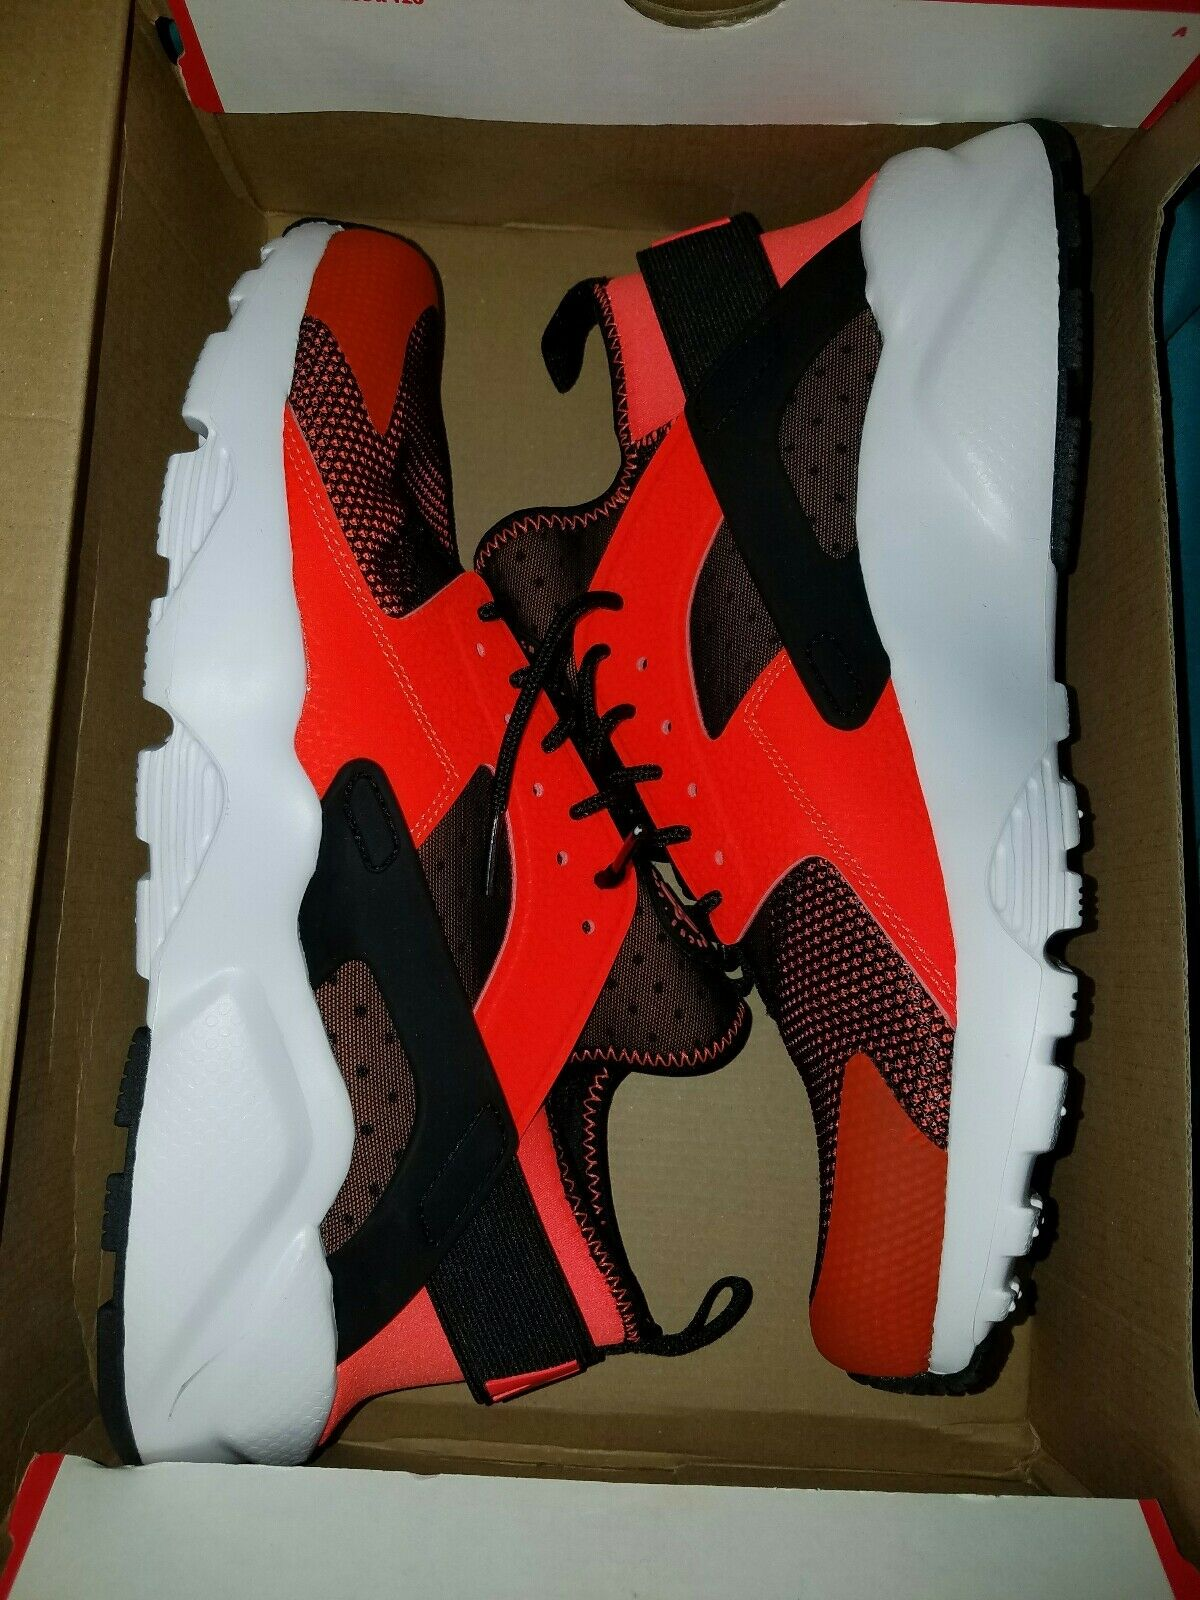 DS Nike Air Huarache Run Ultra Crimson Orange Shoes Sneakers Sz 10 819685-008 Seasonal price cuts, discount benefits